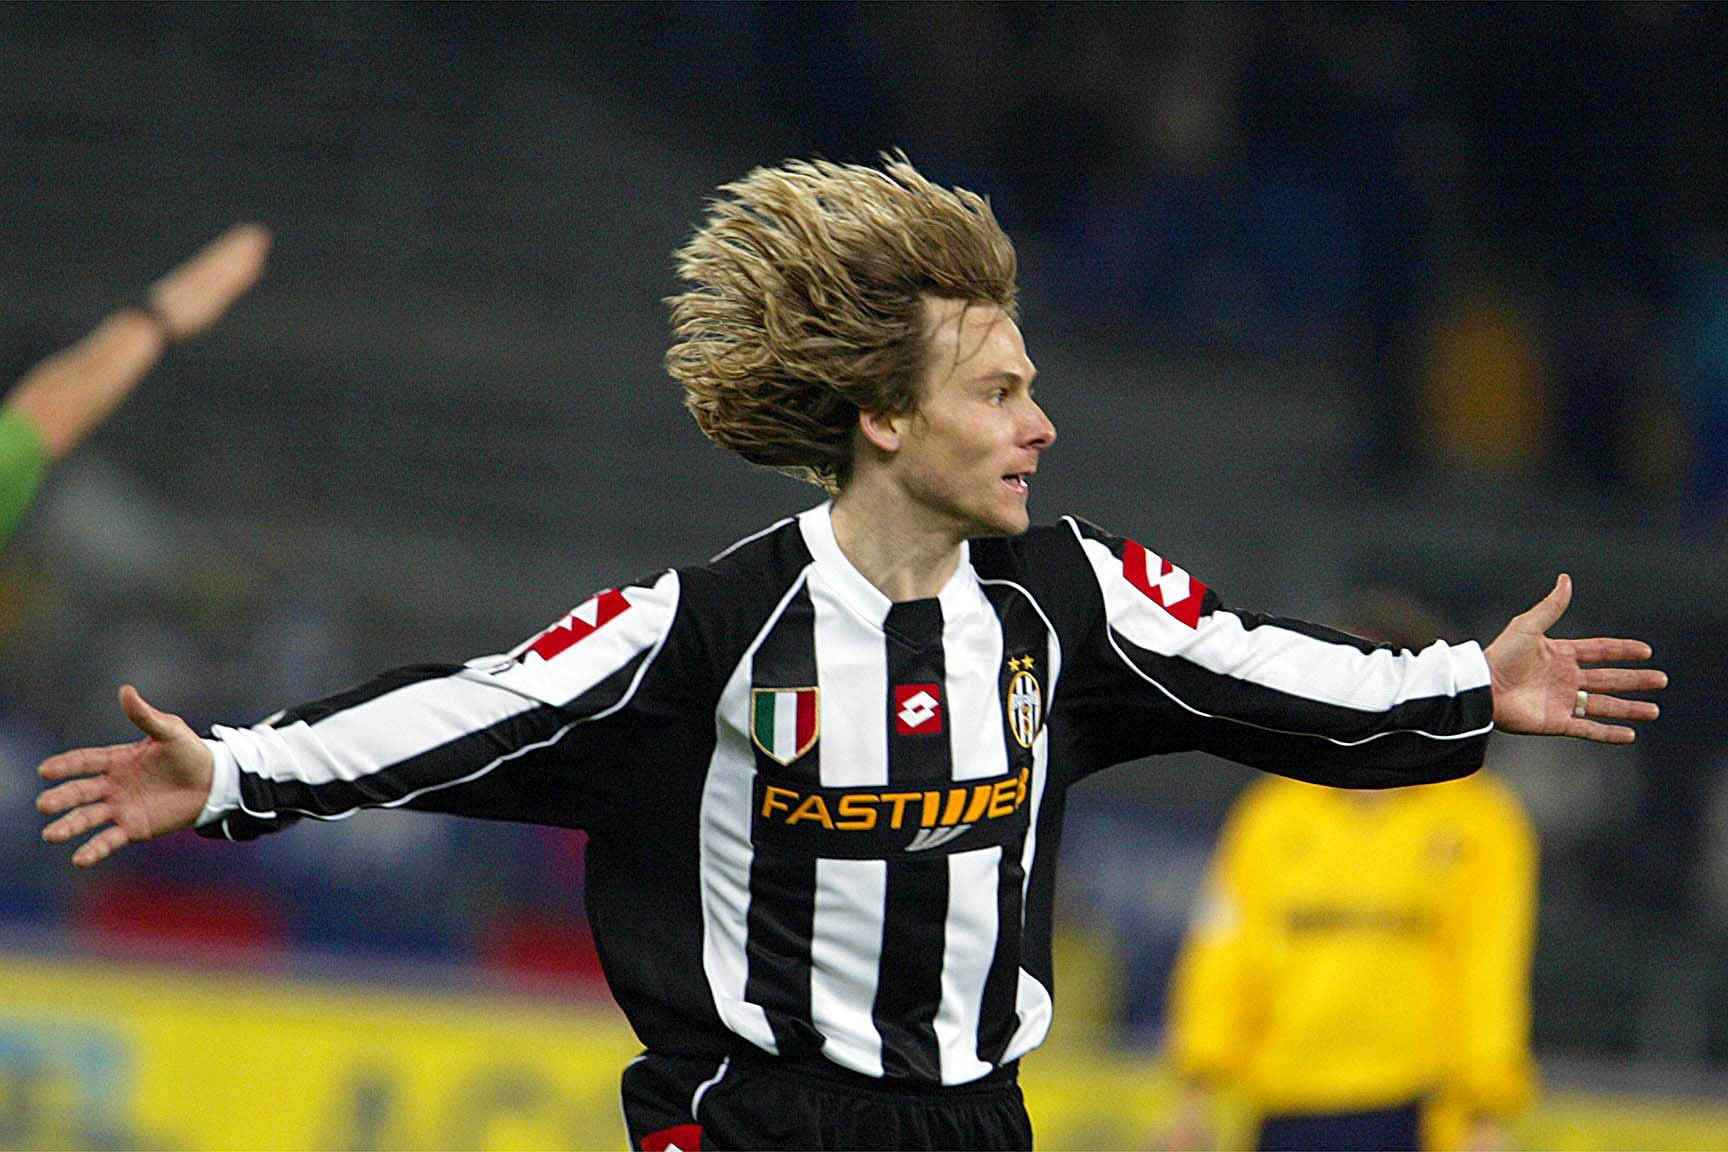 Pavel-Nedved-of-Juventus-celebrates-after-scoring-1584884170.jpg